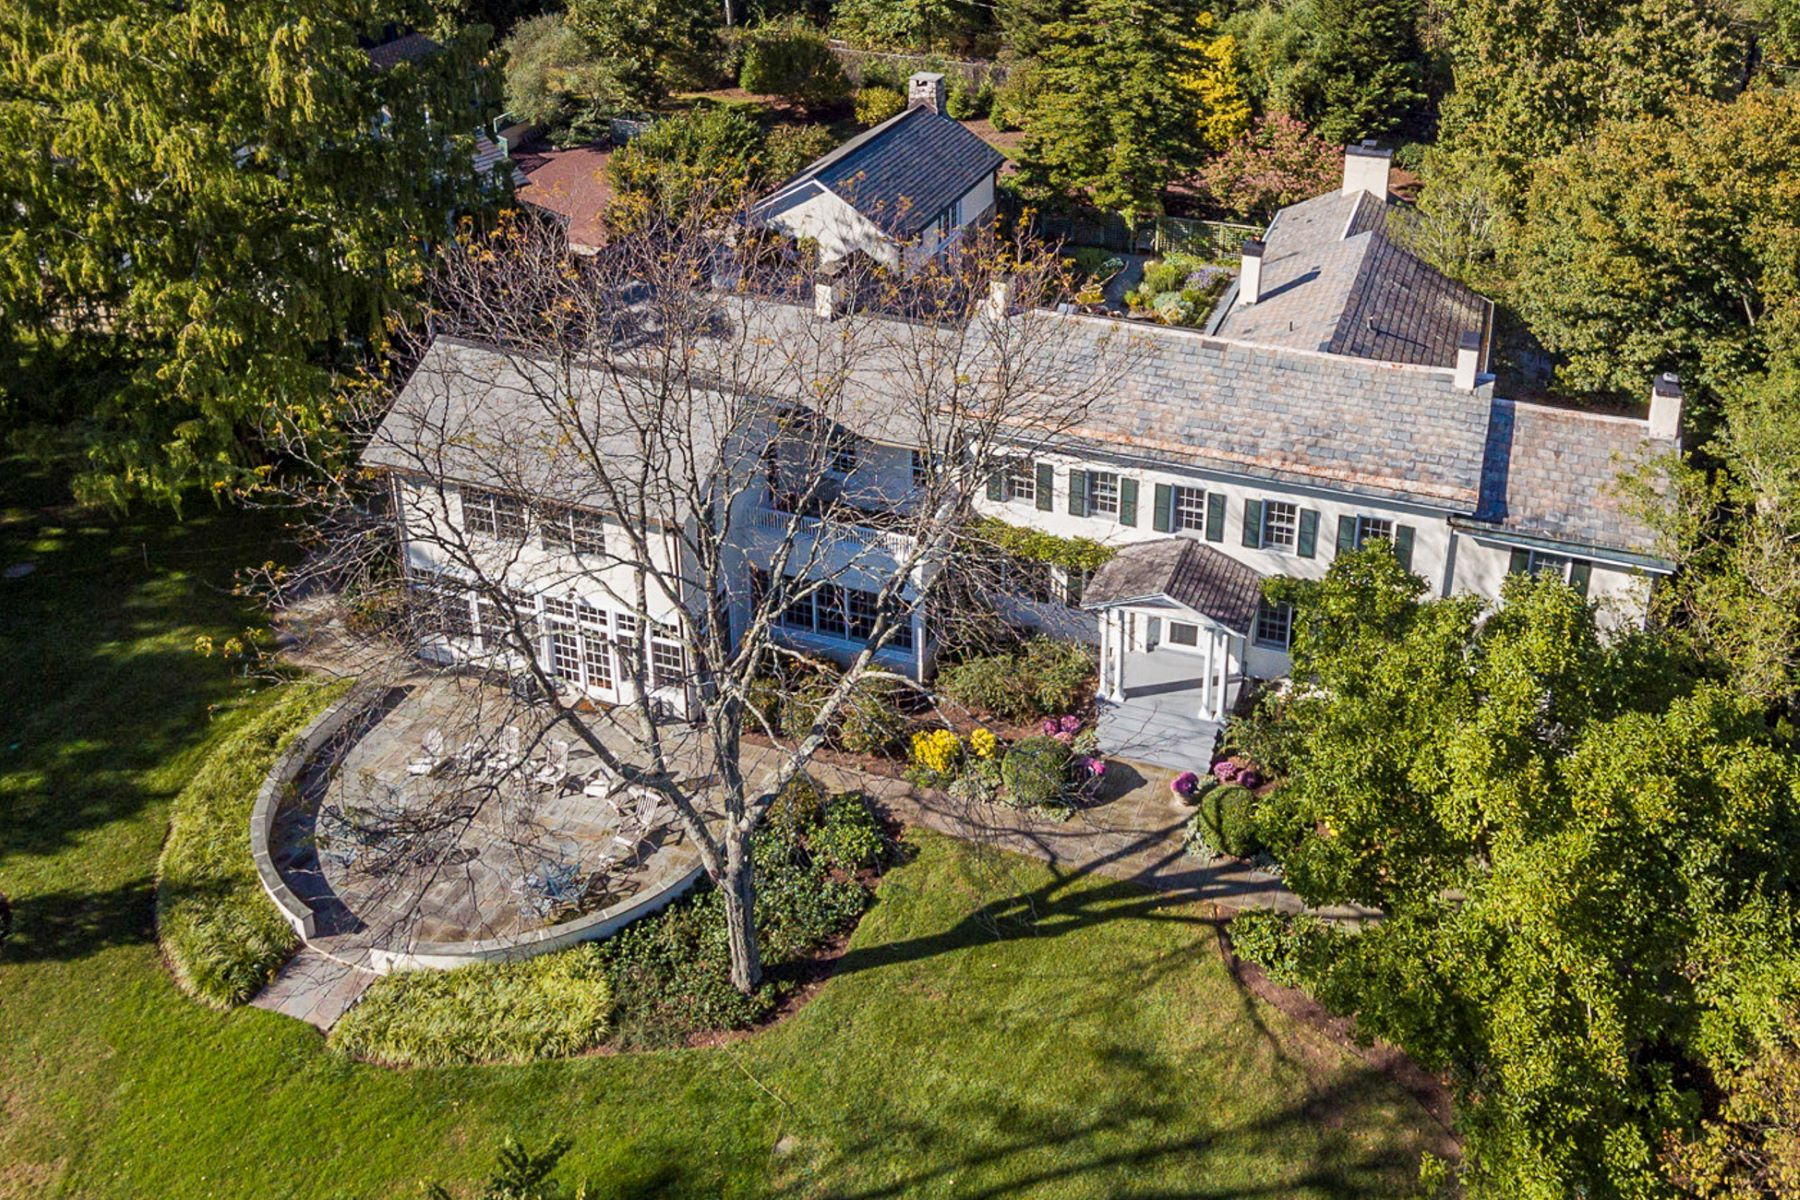 Maison unifamiliale pour l Vente à Stony Brook Estate - Where History Makes a Home - Lawrence Township 4710 Province Line Road, Princeton, New Jersey 08540 États-UnisDans/Autour: Lawrence Township